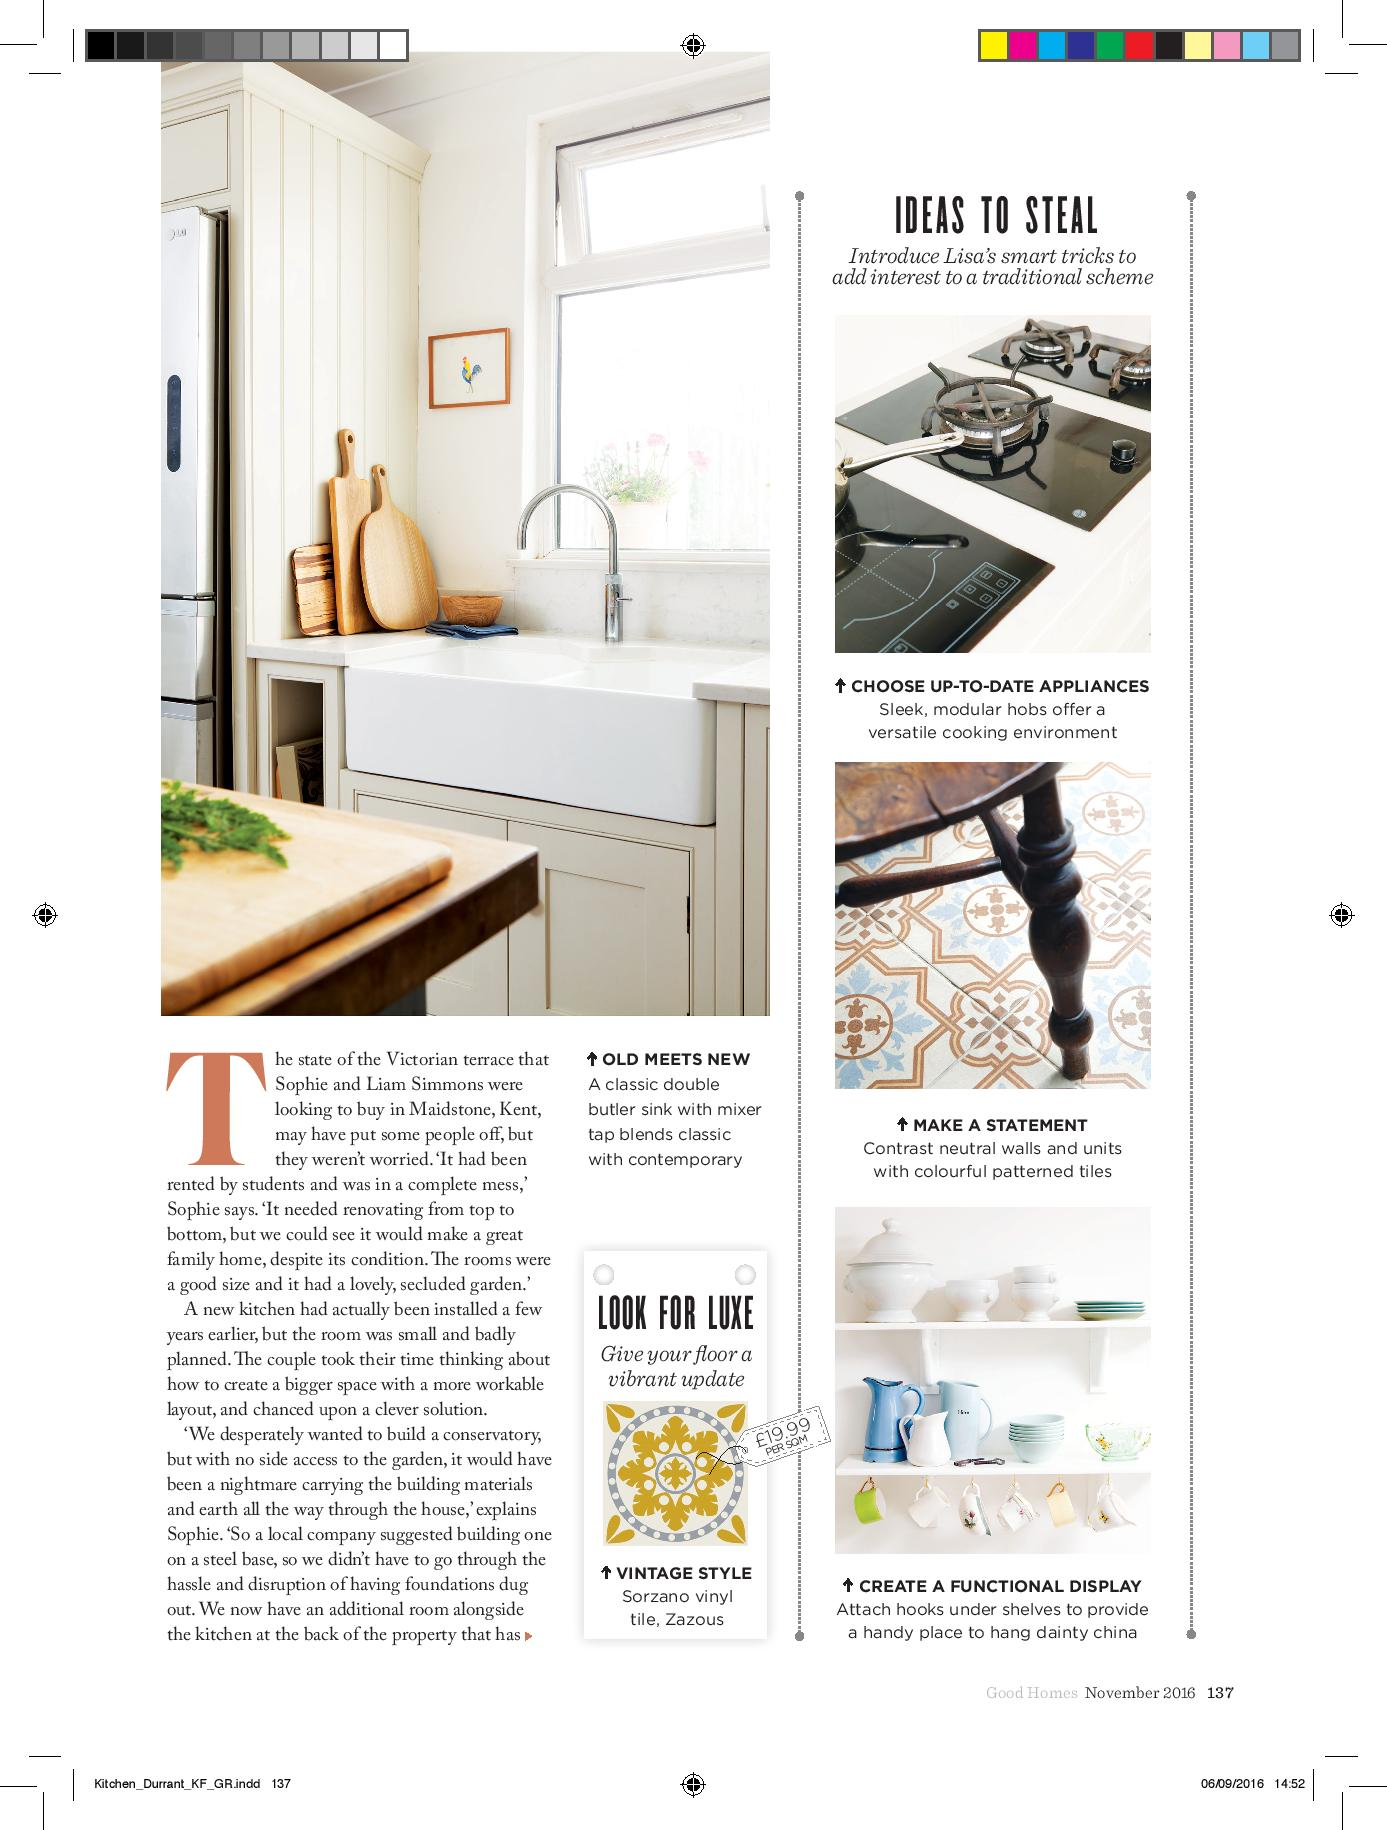 burlanes kitchen in Good Homes Magazine